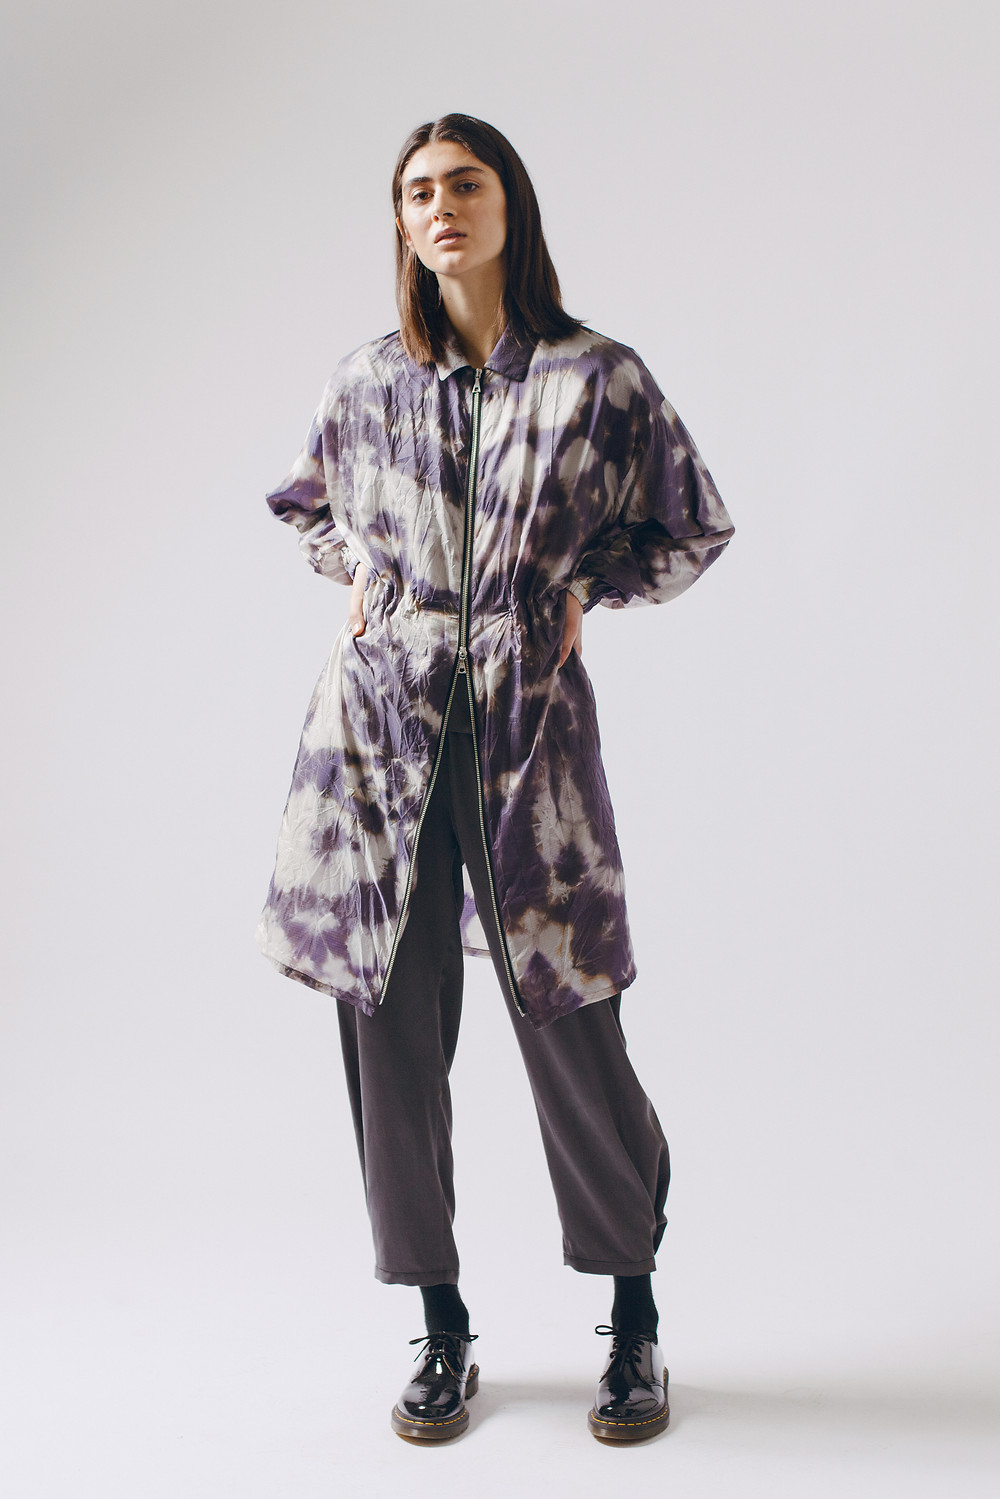 Maiden Noir, Seattle clothing brand, drops its A/W 2020 line, drawing colors, shapes, and relaxed silhouettes from the fascinating world of mycoflora. Model win purple tie die jacket with zipper, gray pants, black boots, long brown hairstyle.